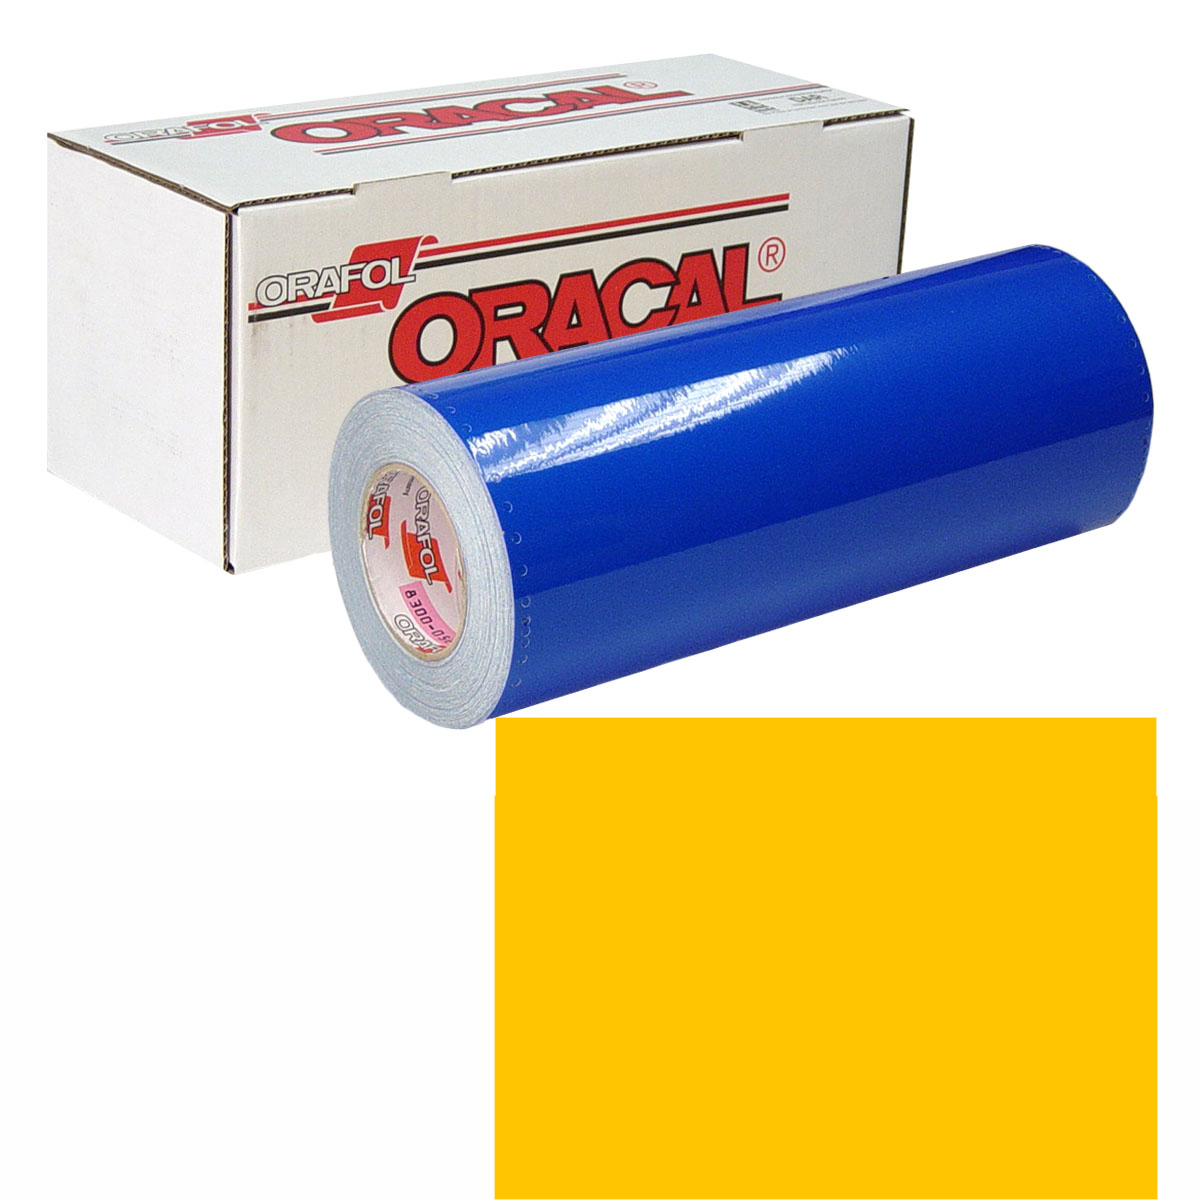 ORACAL 631 Unp 24in X 50yd 021 Yellow